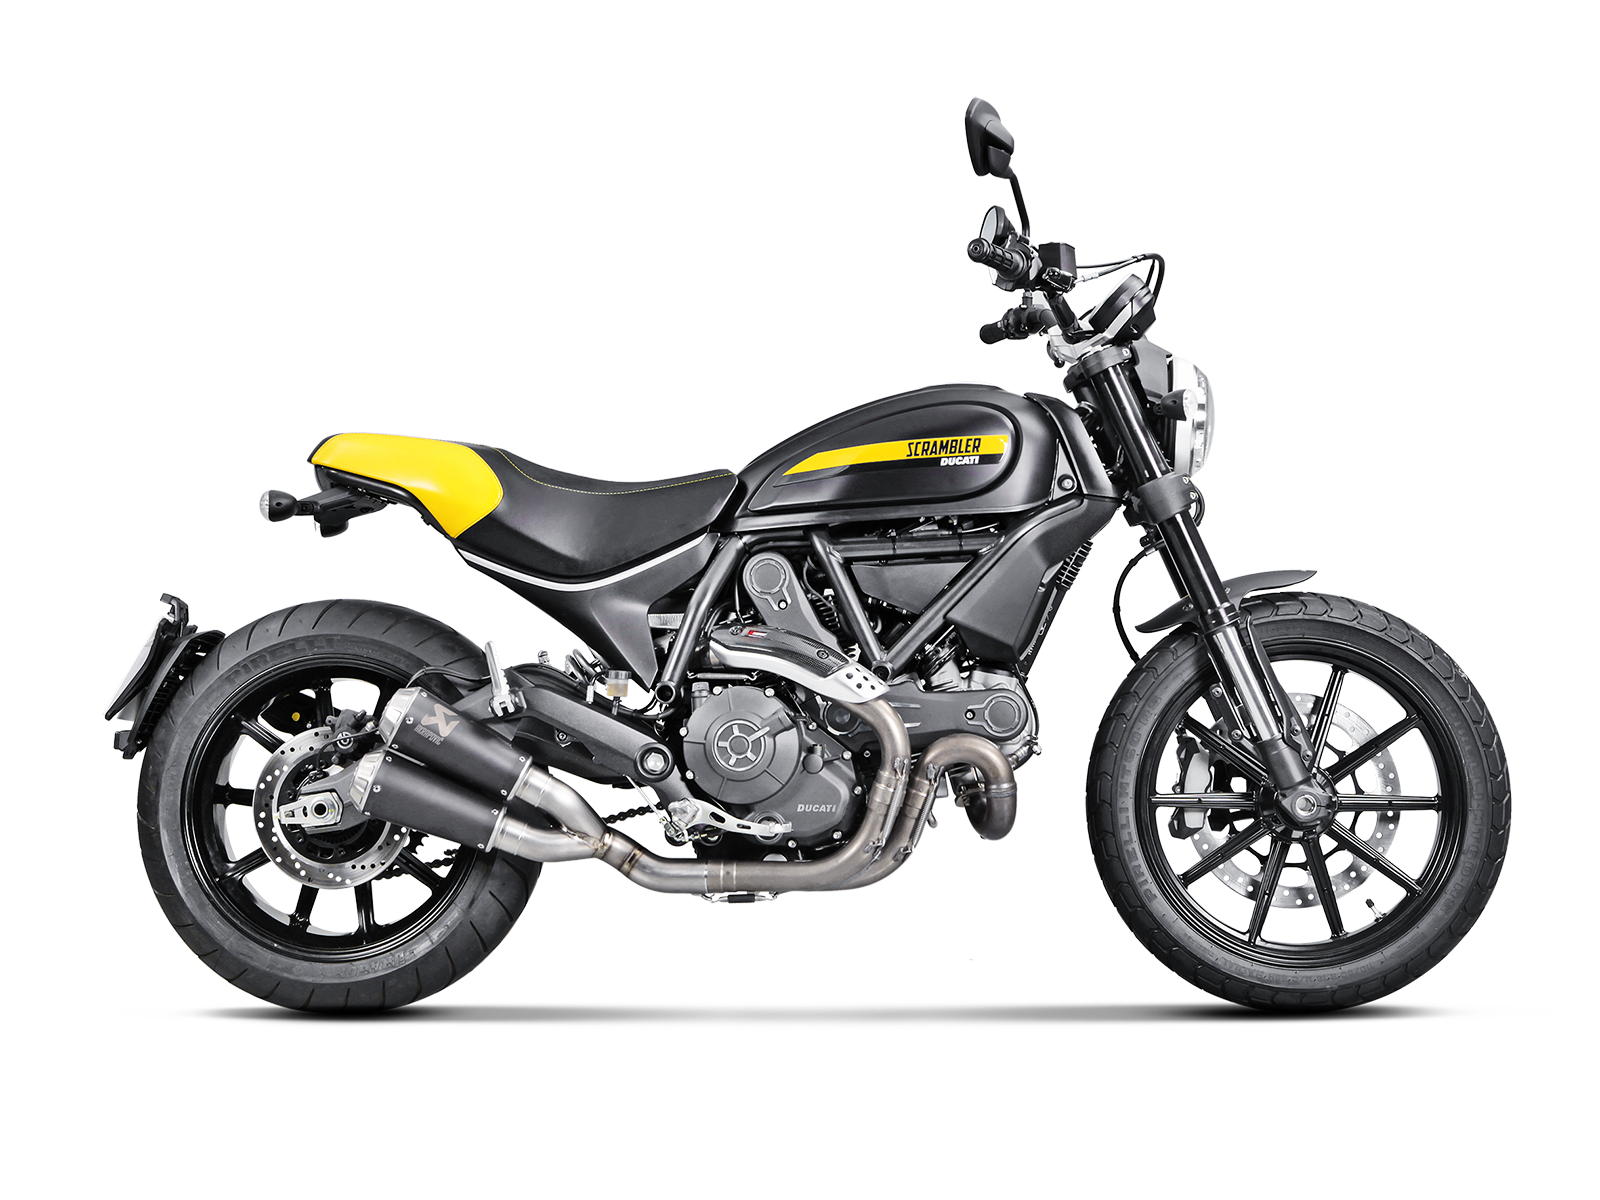 Ducati Scrambler Cafe Racer 2020 Slip On Line Titanium Akrapovic Motorcycle Exhaust